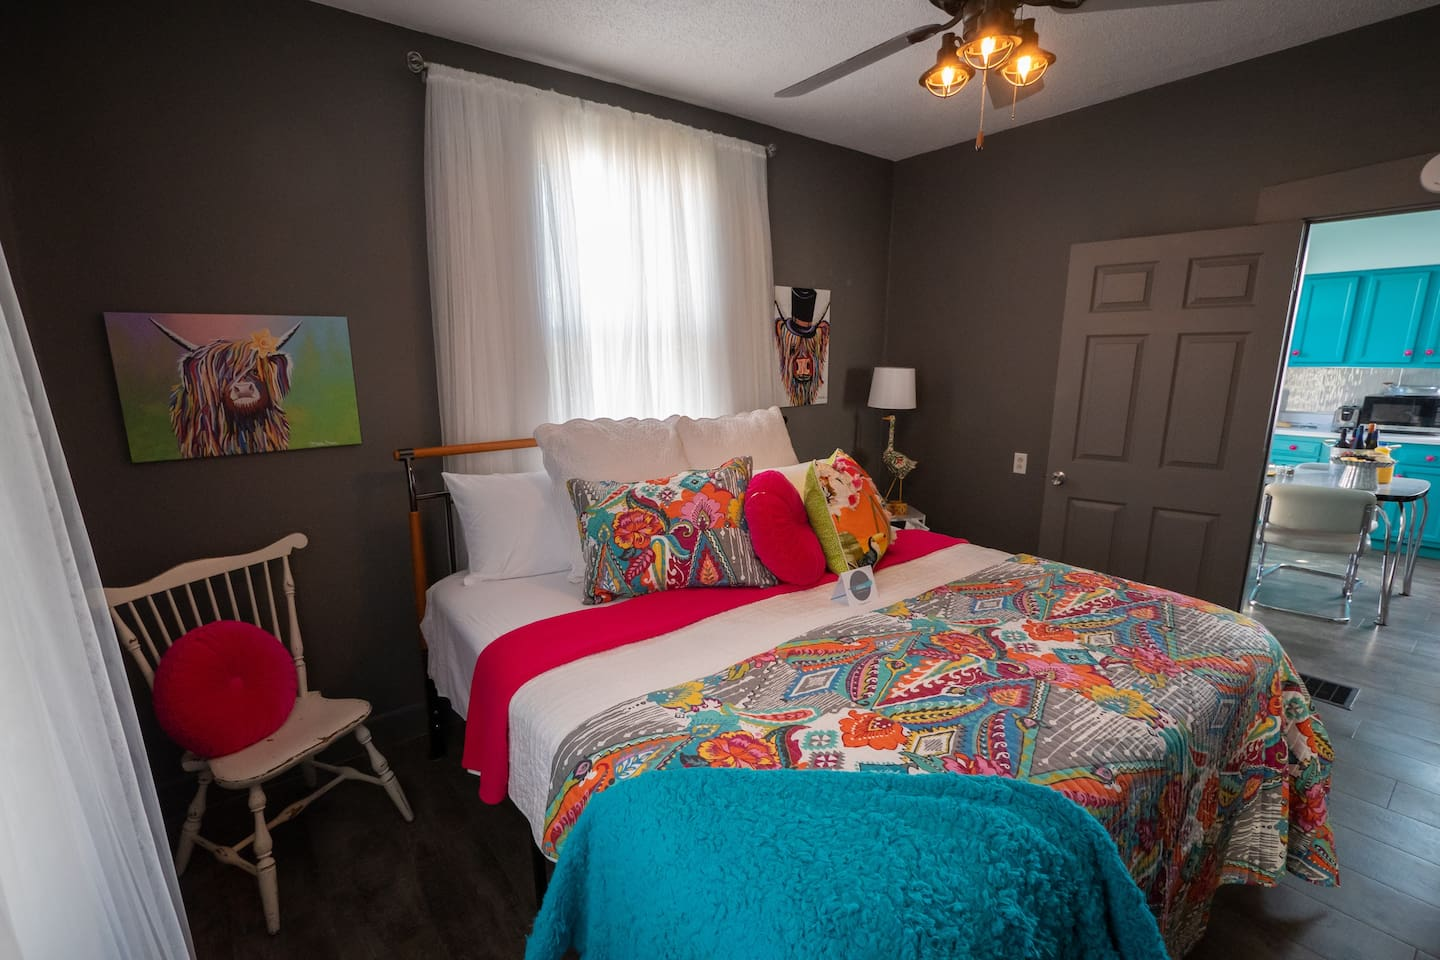 Welcome to The Shanty on 5th! The fabulous King Bed is sure to be a fav!